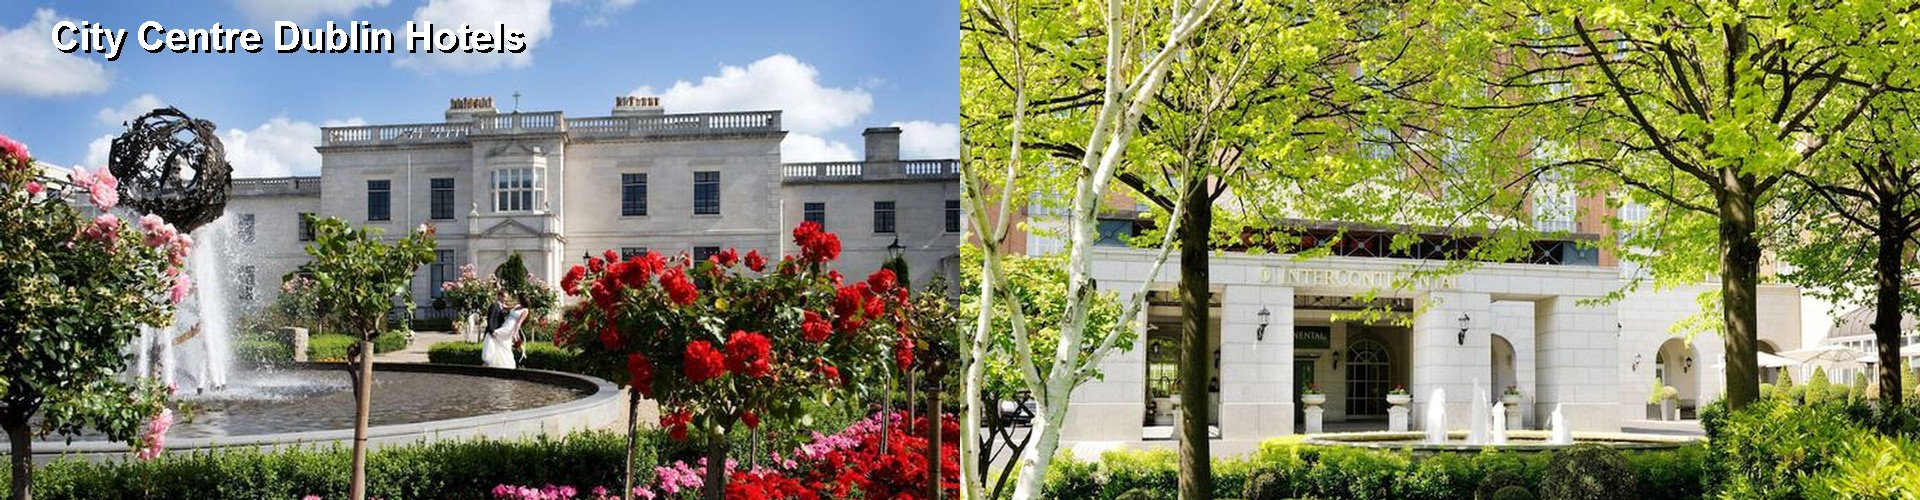 5 Best Hotels near City Centre Dublin